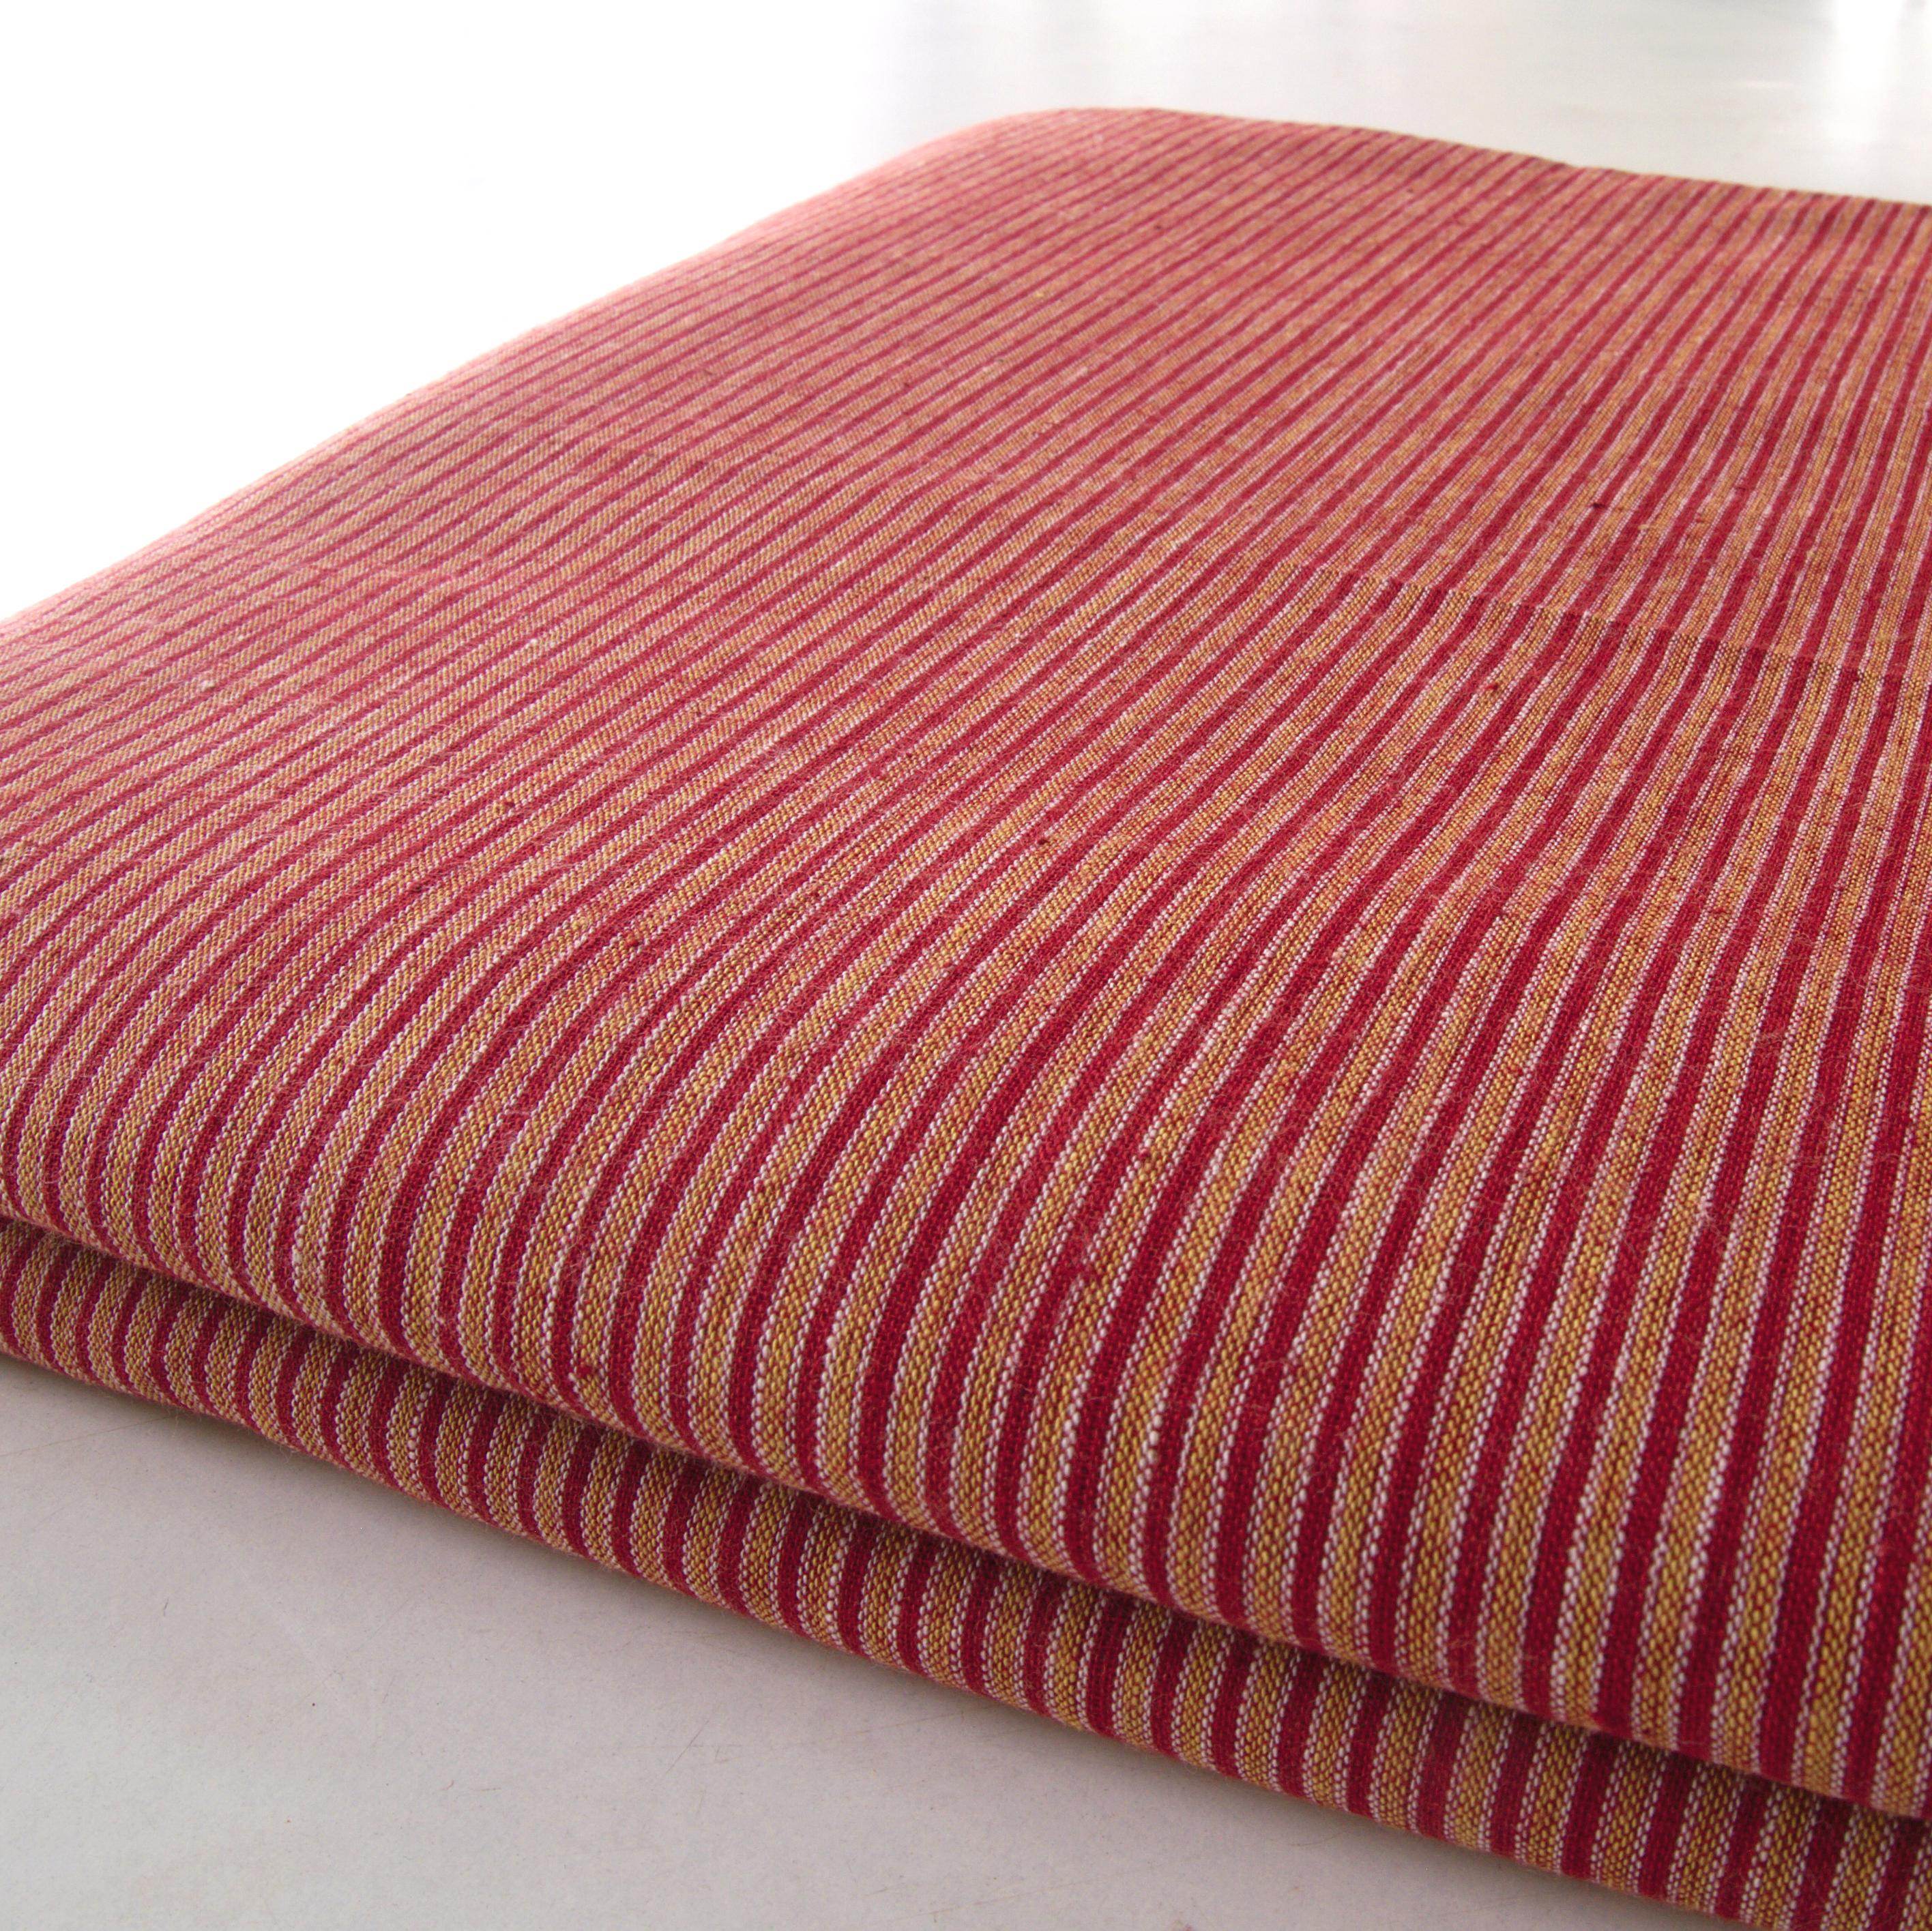 100% Handloom Woven Cotton - Double Stripes - Alizarin Red Warp & Weft, White and Pomegranate Yellow Warp - Bolt